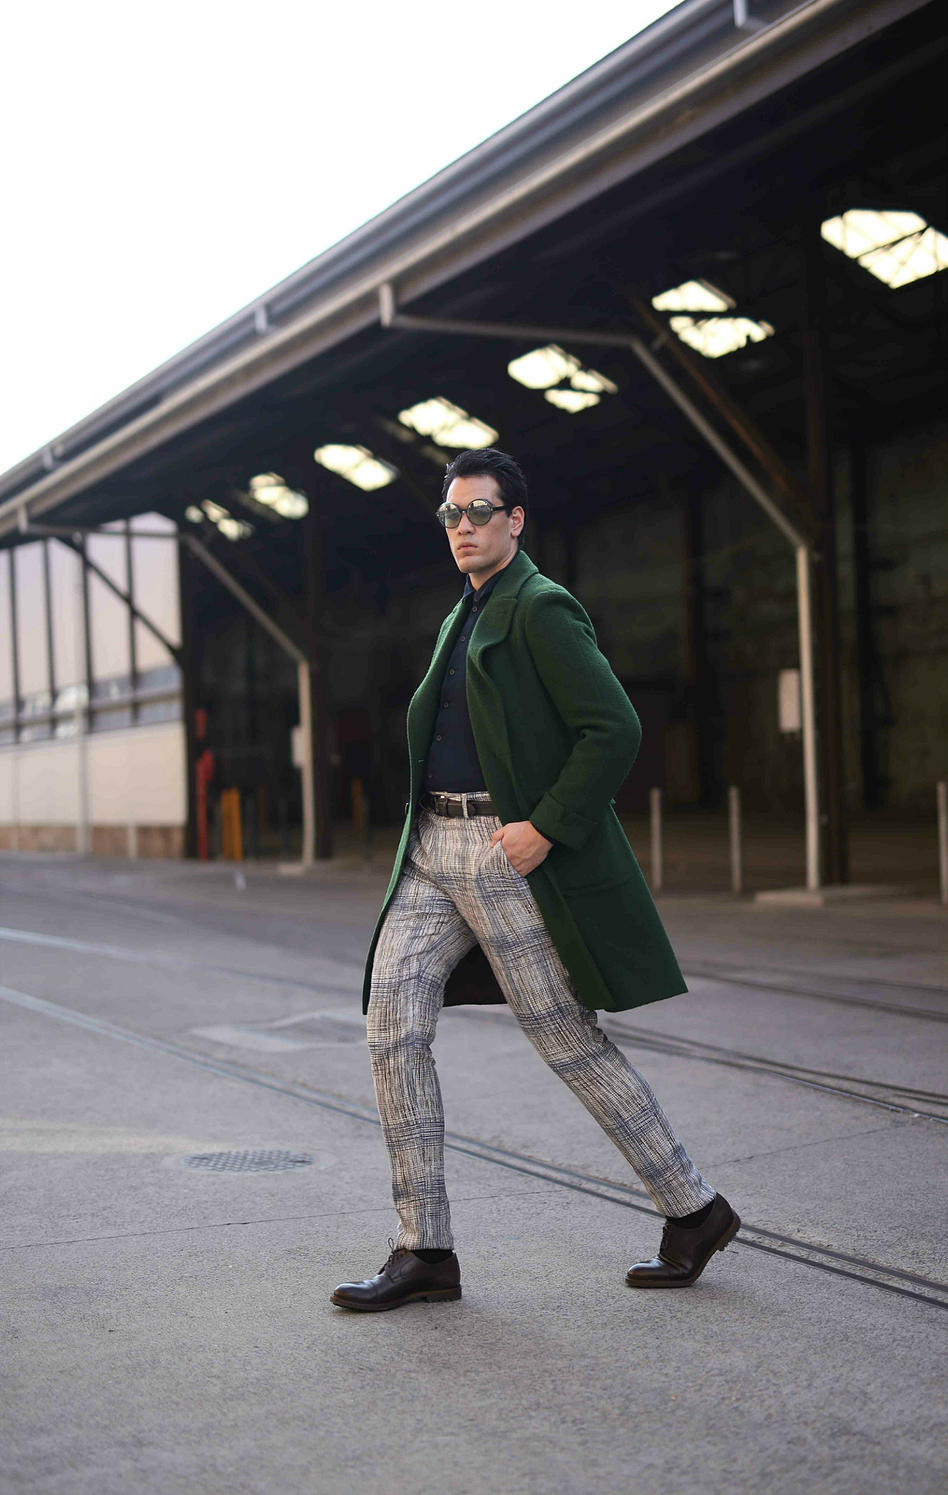 Style | #OotdTHE BOY IN THE GREEN COAT  - I'm just you're average boy running about town in Lardini